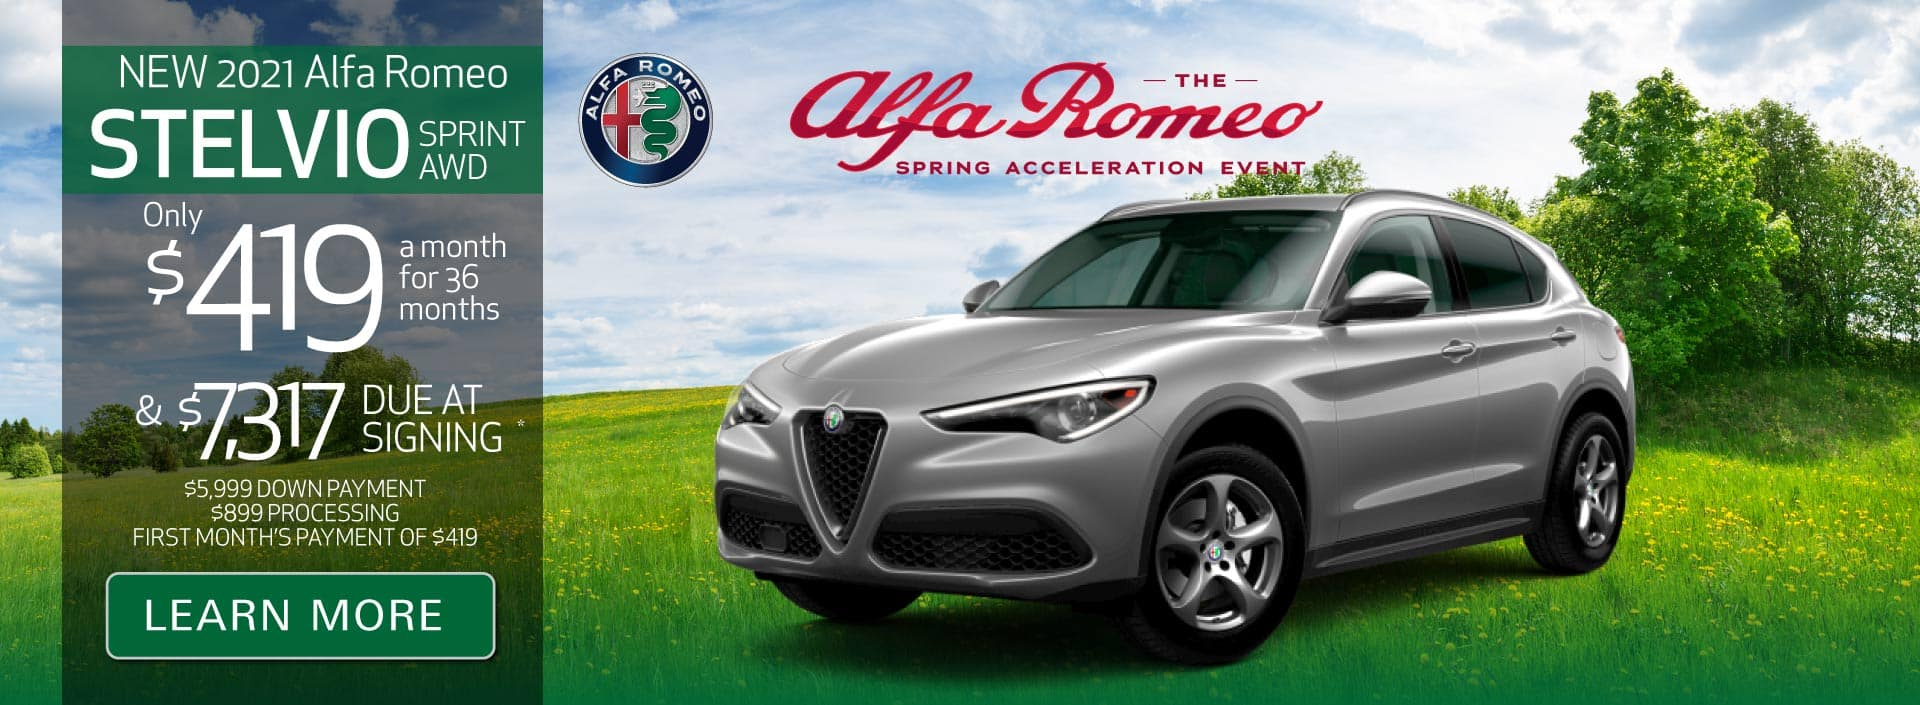 New 2021 Stelvio Sprint AWD Only $419 a month for 36 months | Learn More